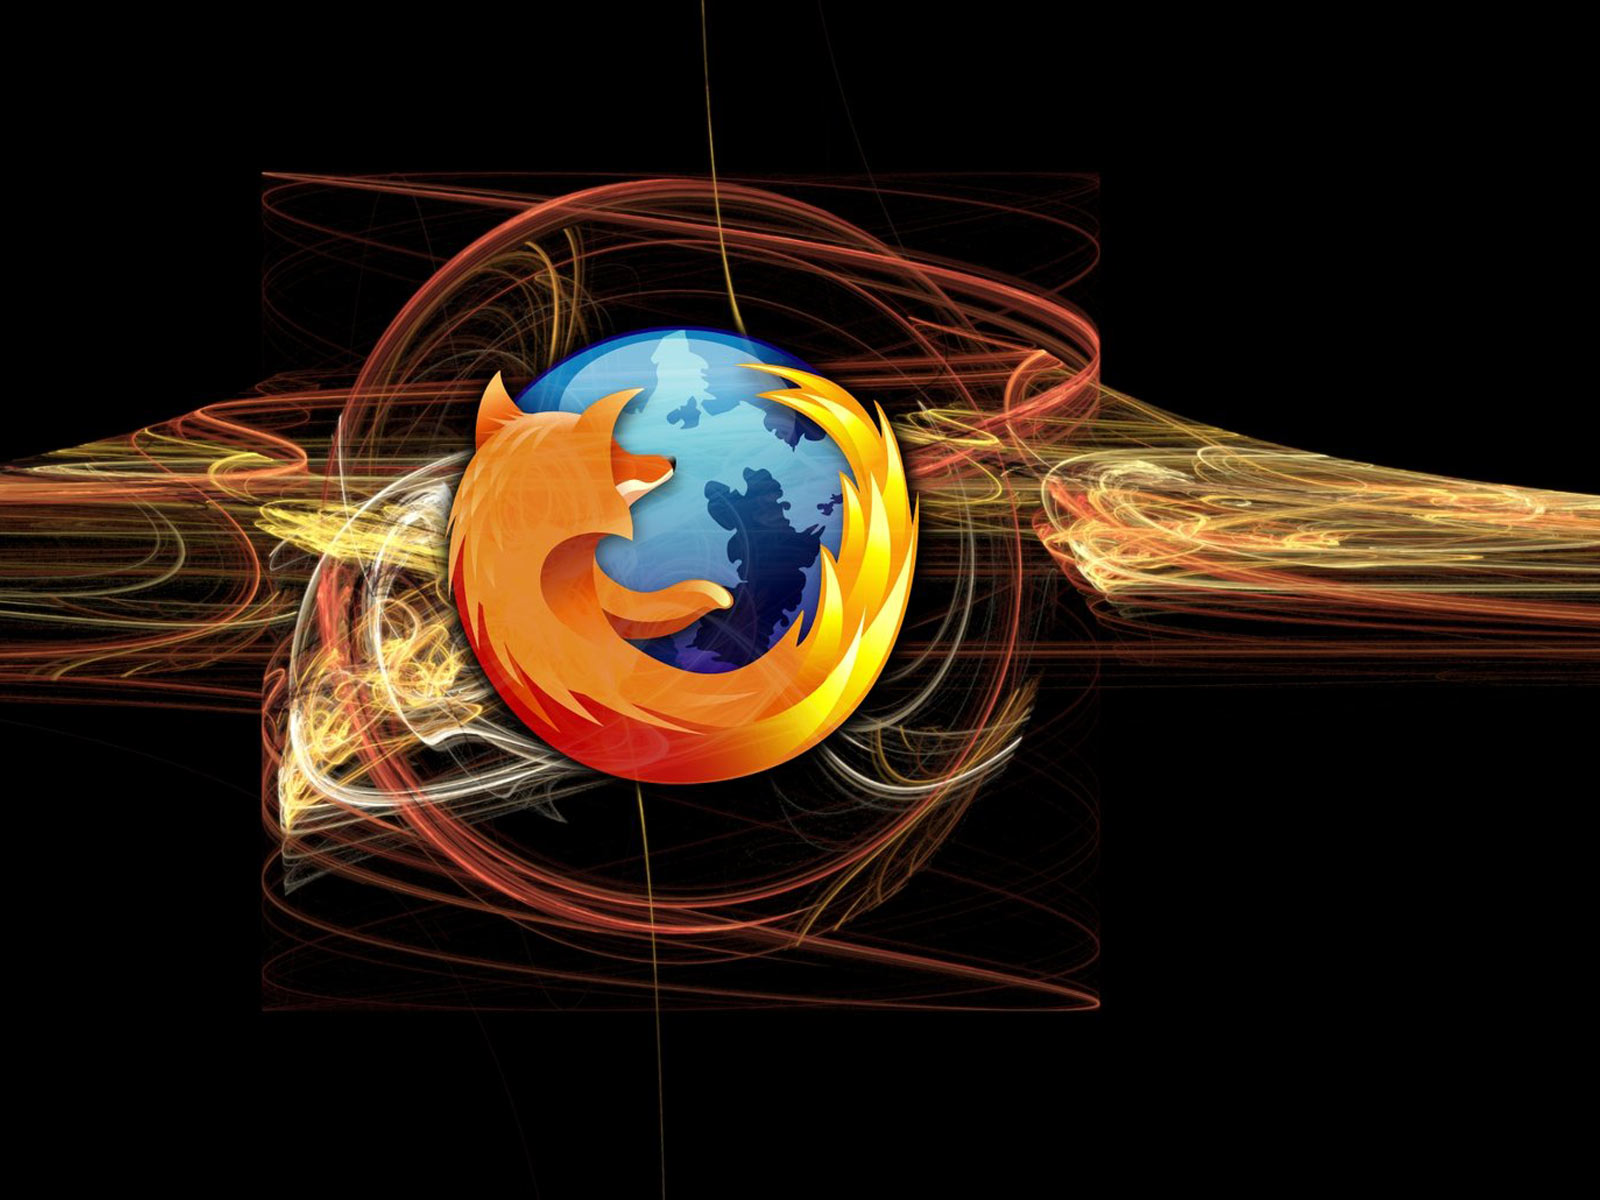 Firefox Background Themes - WallpaperSafari